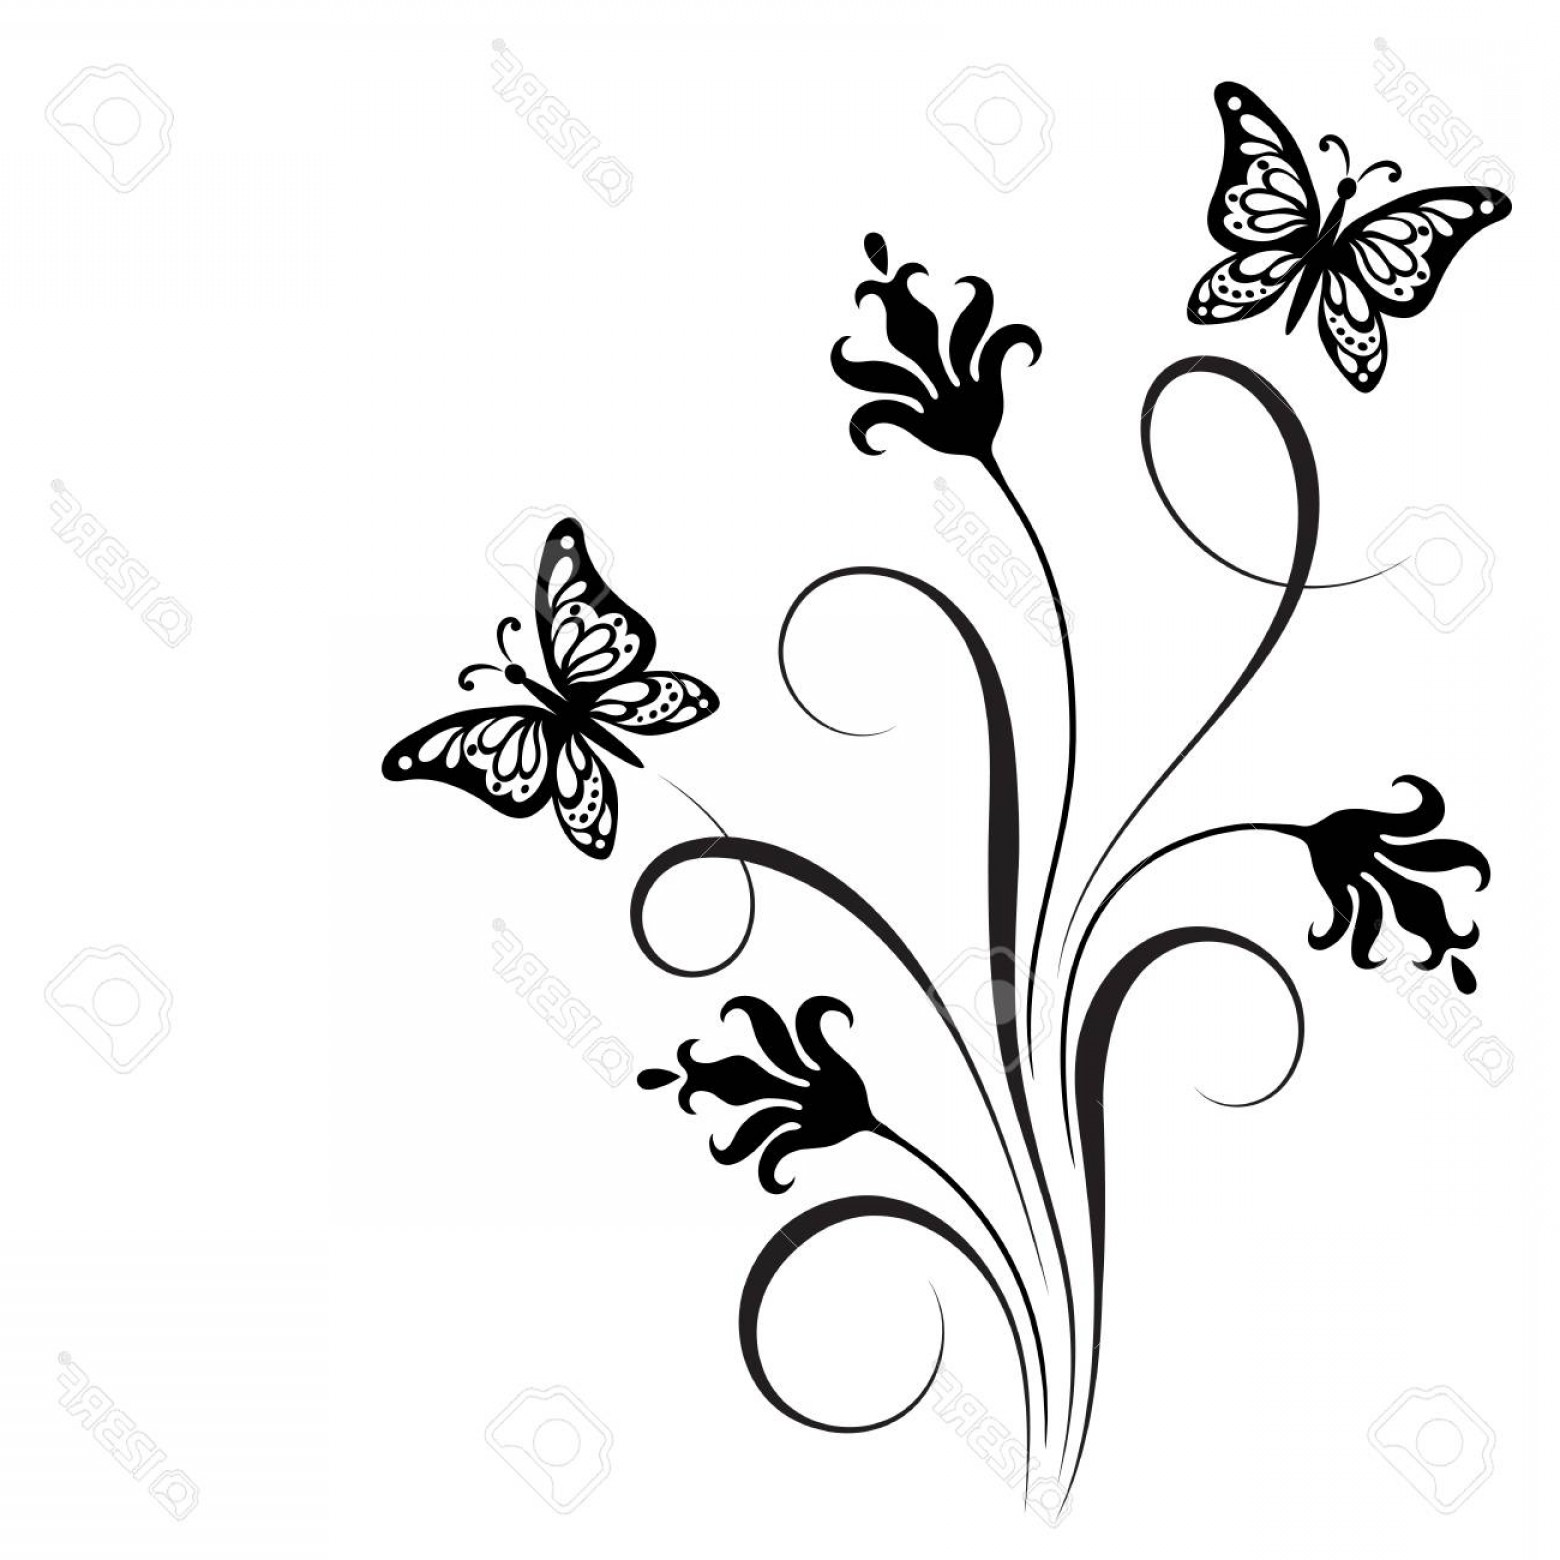 Butter Fly And Flower Vector Black And White: Photostock Vector Decorative Floral Corner Ornament With Flowers And Butterfly For Stencil